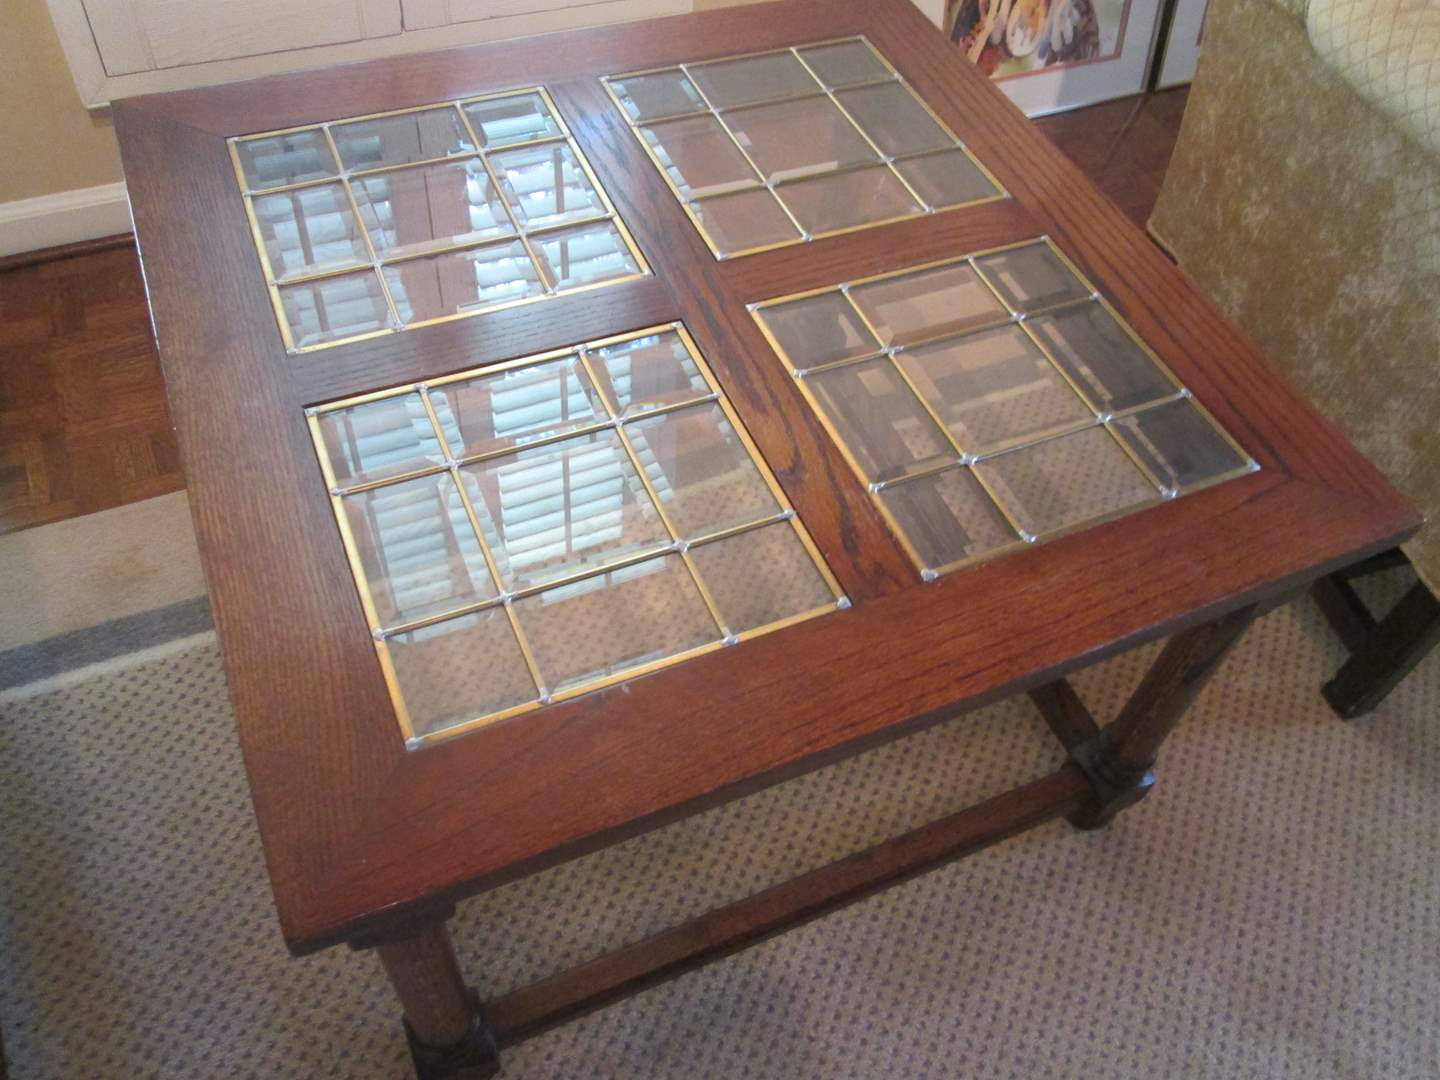 Lot # 308 - End Table, Wood with Glass Inserts (main image)